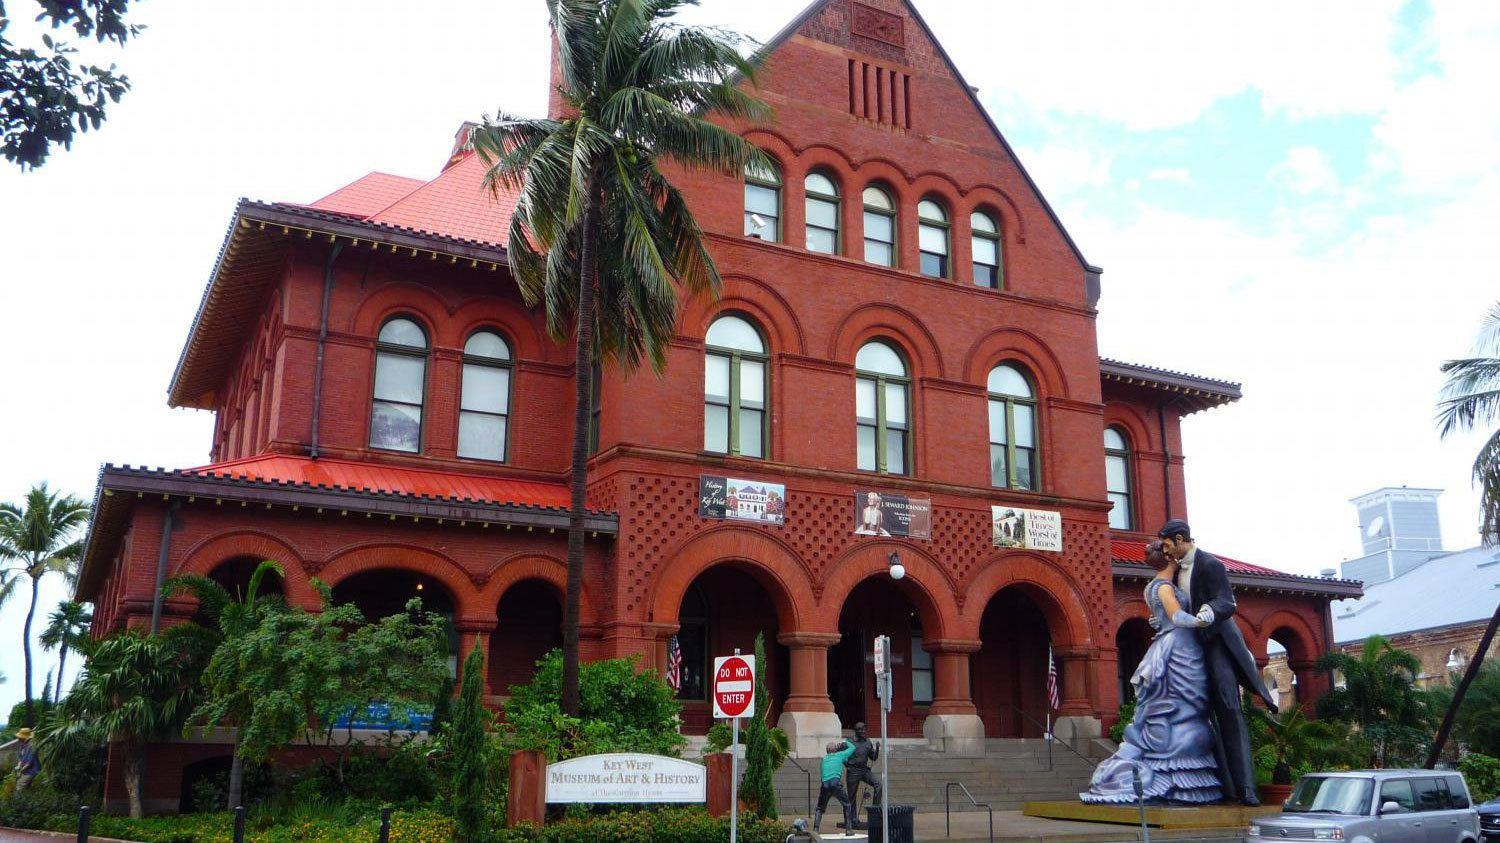 visit the Museum of Art and History in Key West